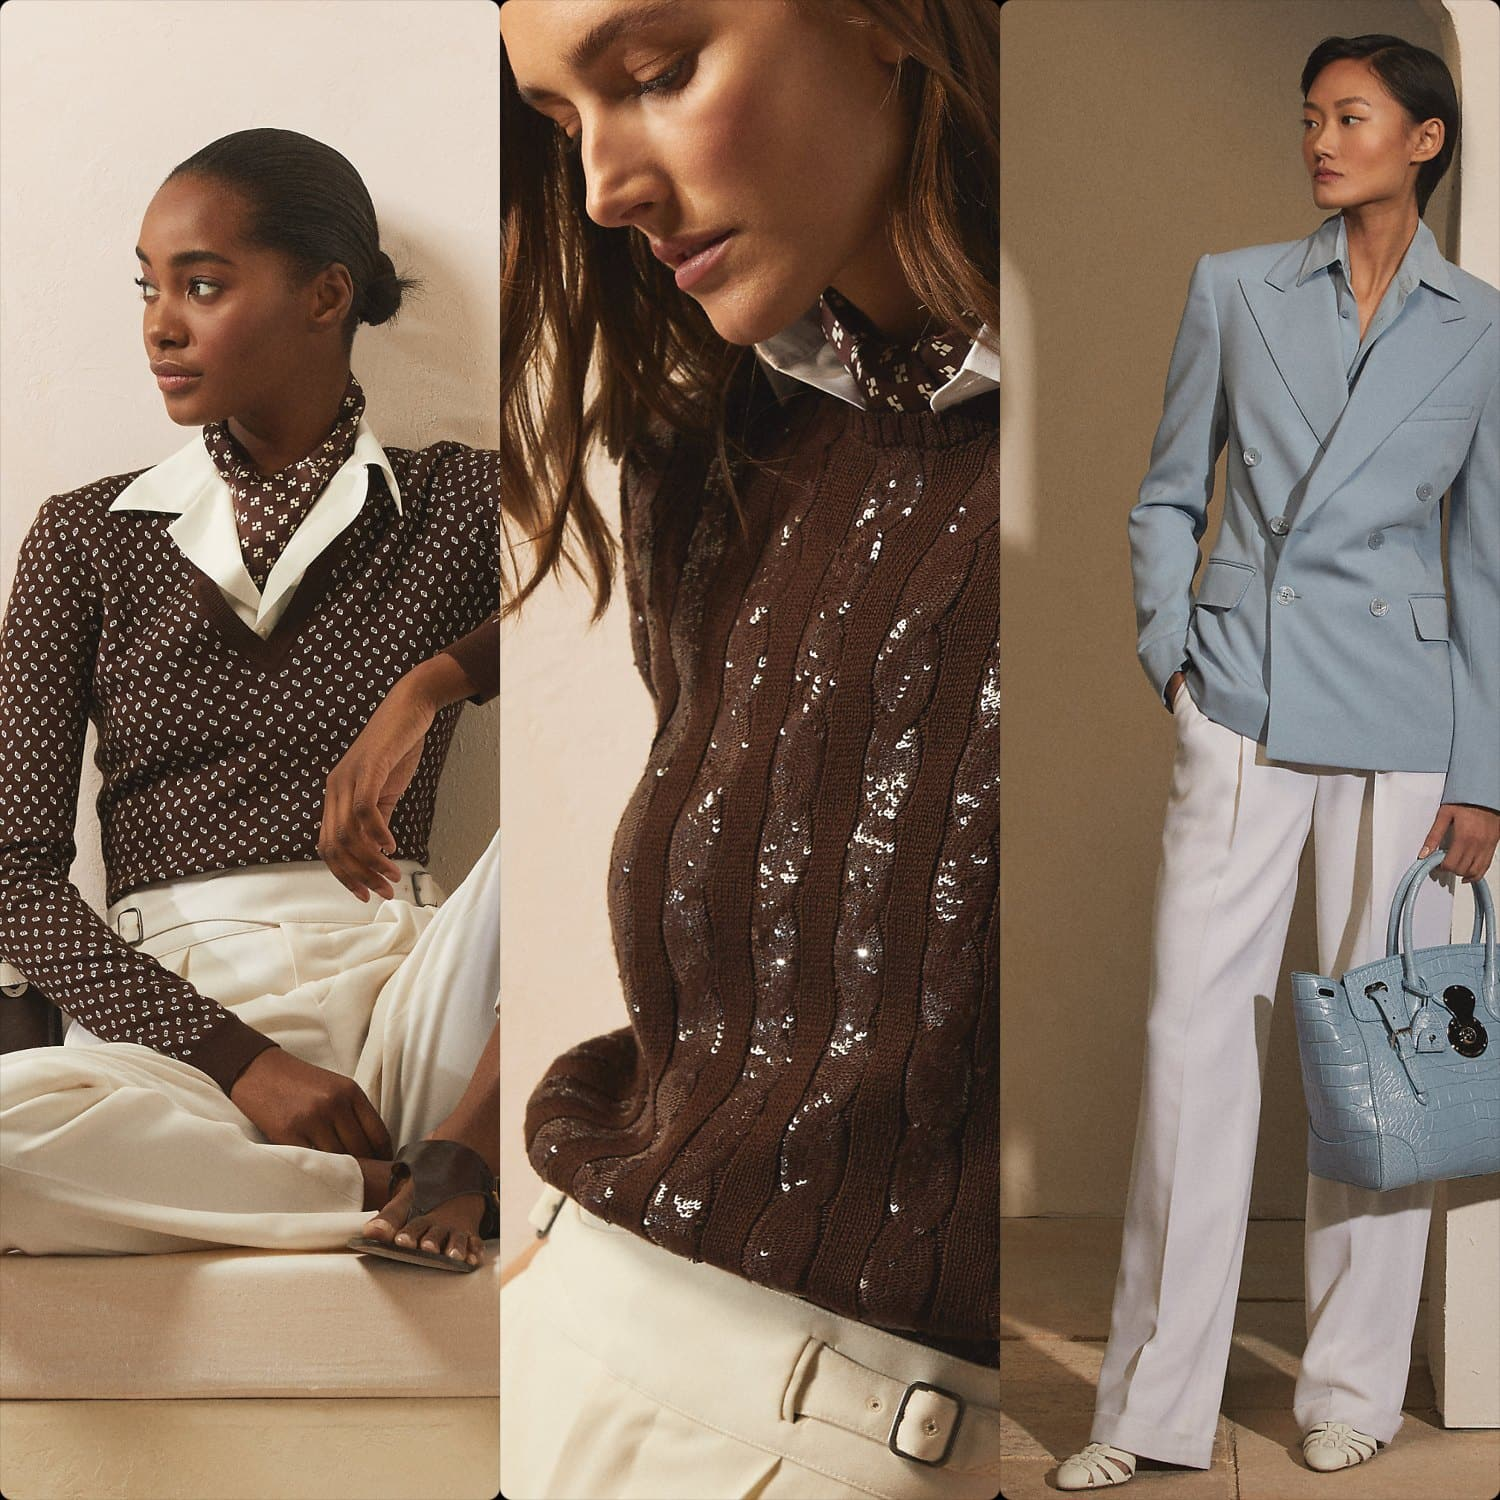 Ralph Lauren Spring 2021 - All or Nothing at All by RUNWAY MAGAZINE